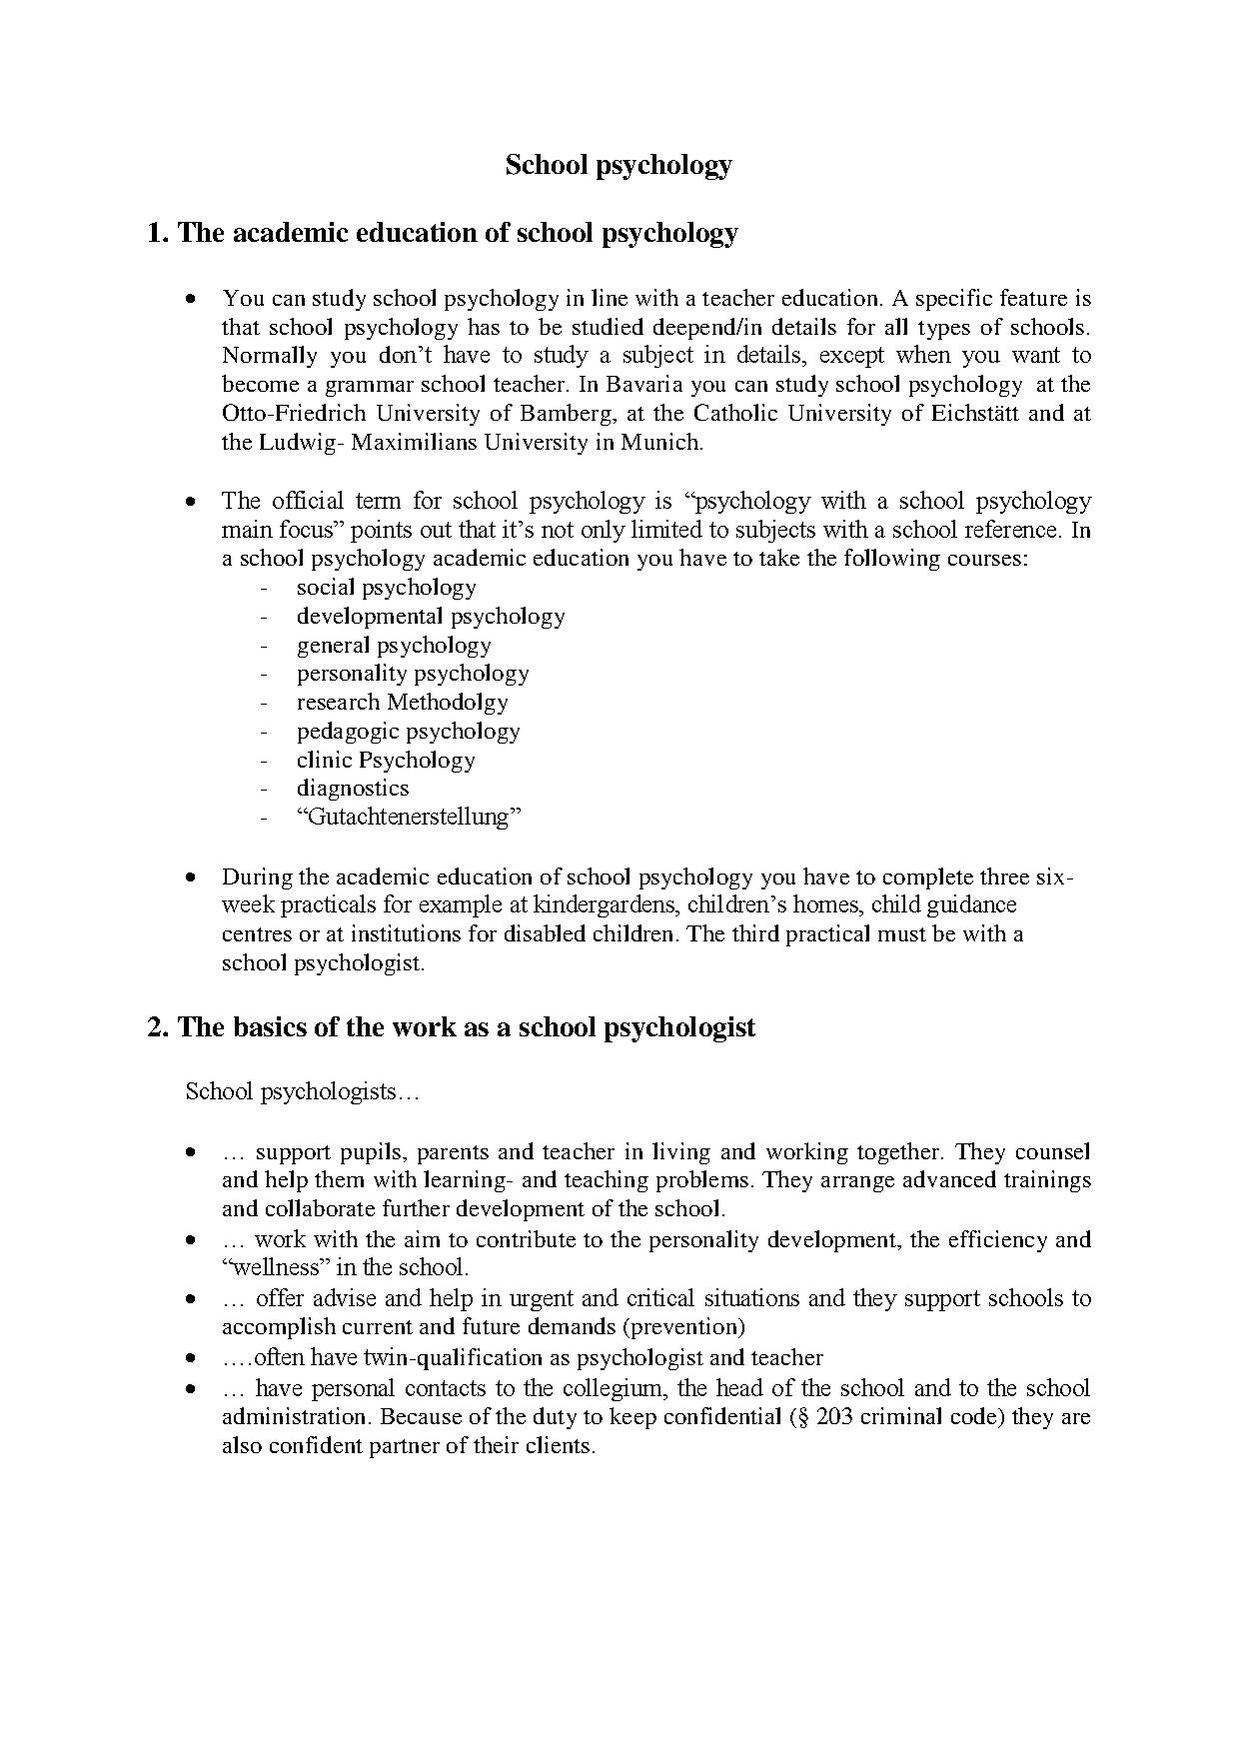 School psychologist.pdf